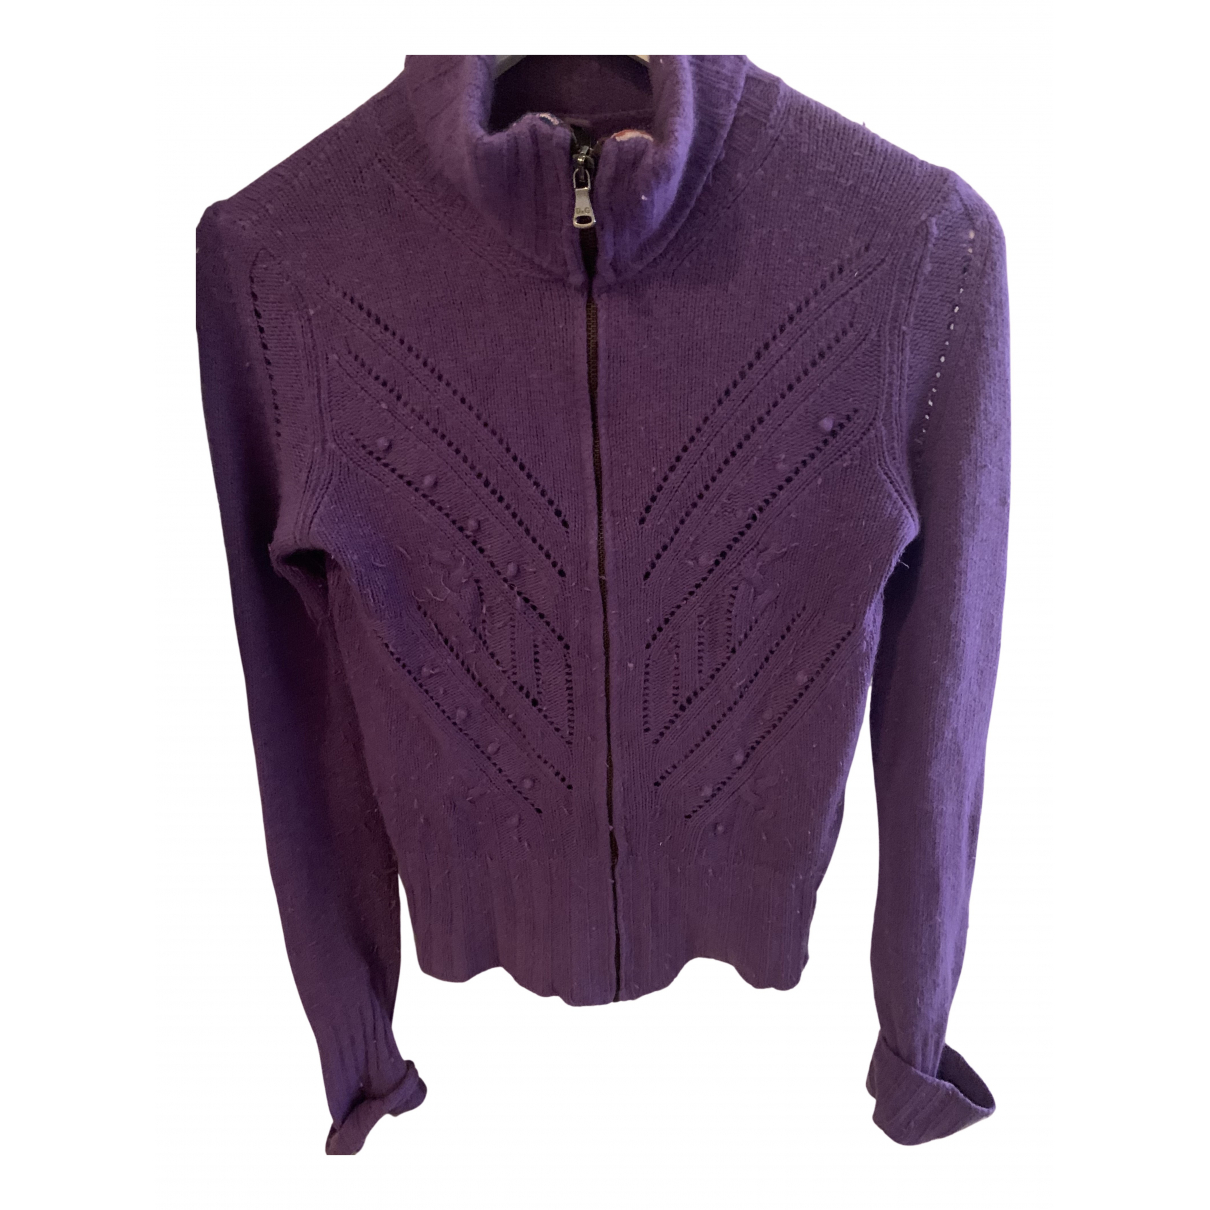 D&g N Purple Wool Knitwear for Women XS International